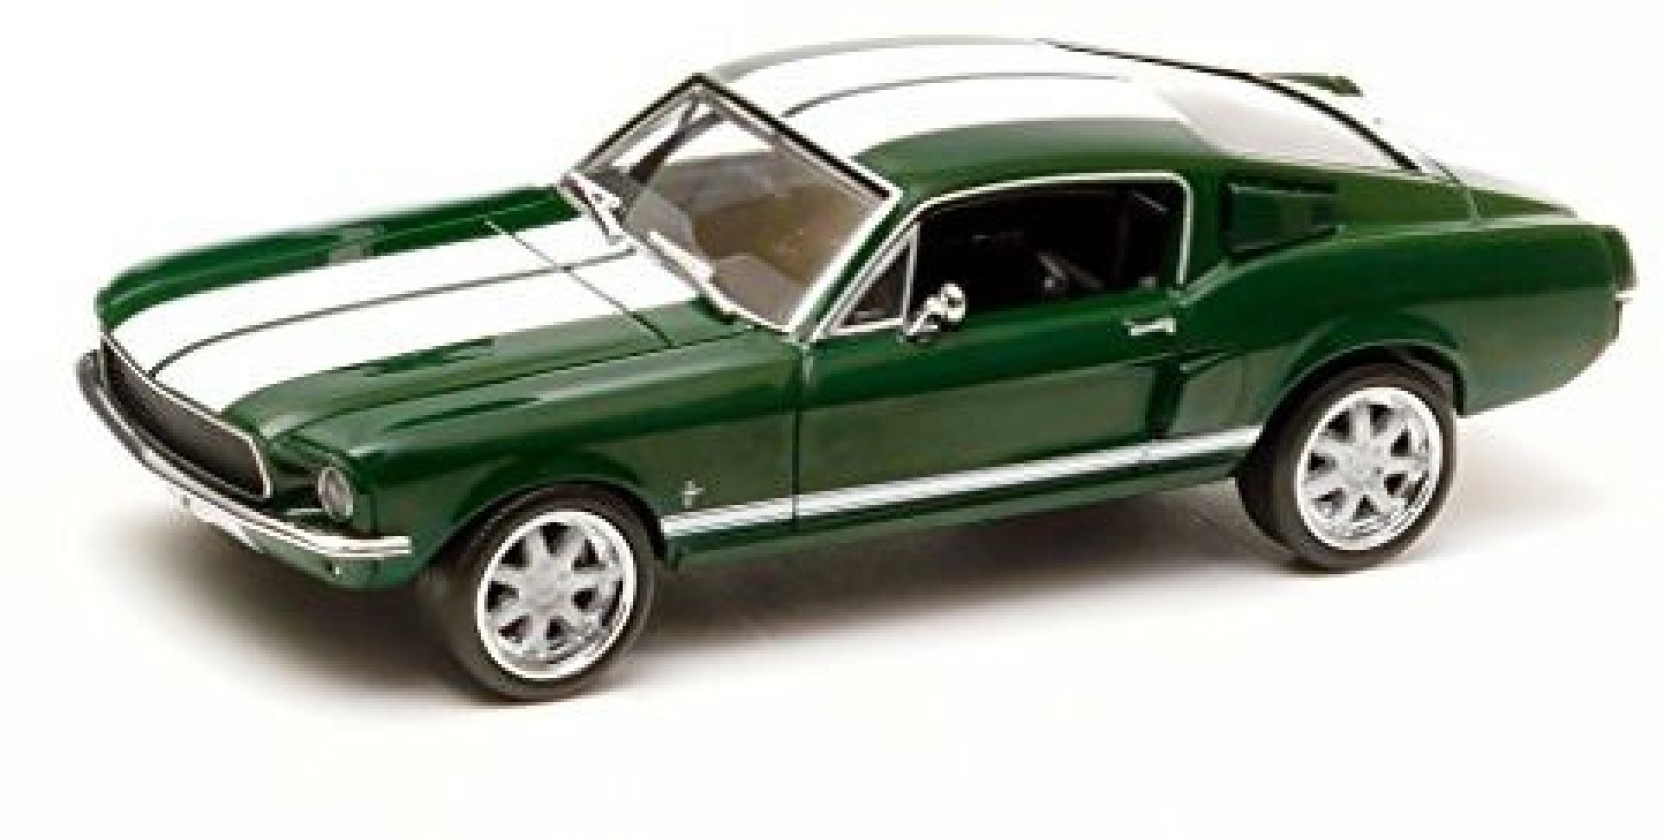 Greenlight 1967 ford mustang the fast and the furious movie 2006 tokyo drift 1 43 by 86211 multicolor